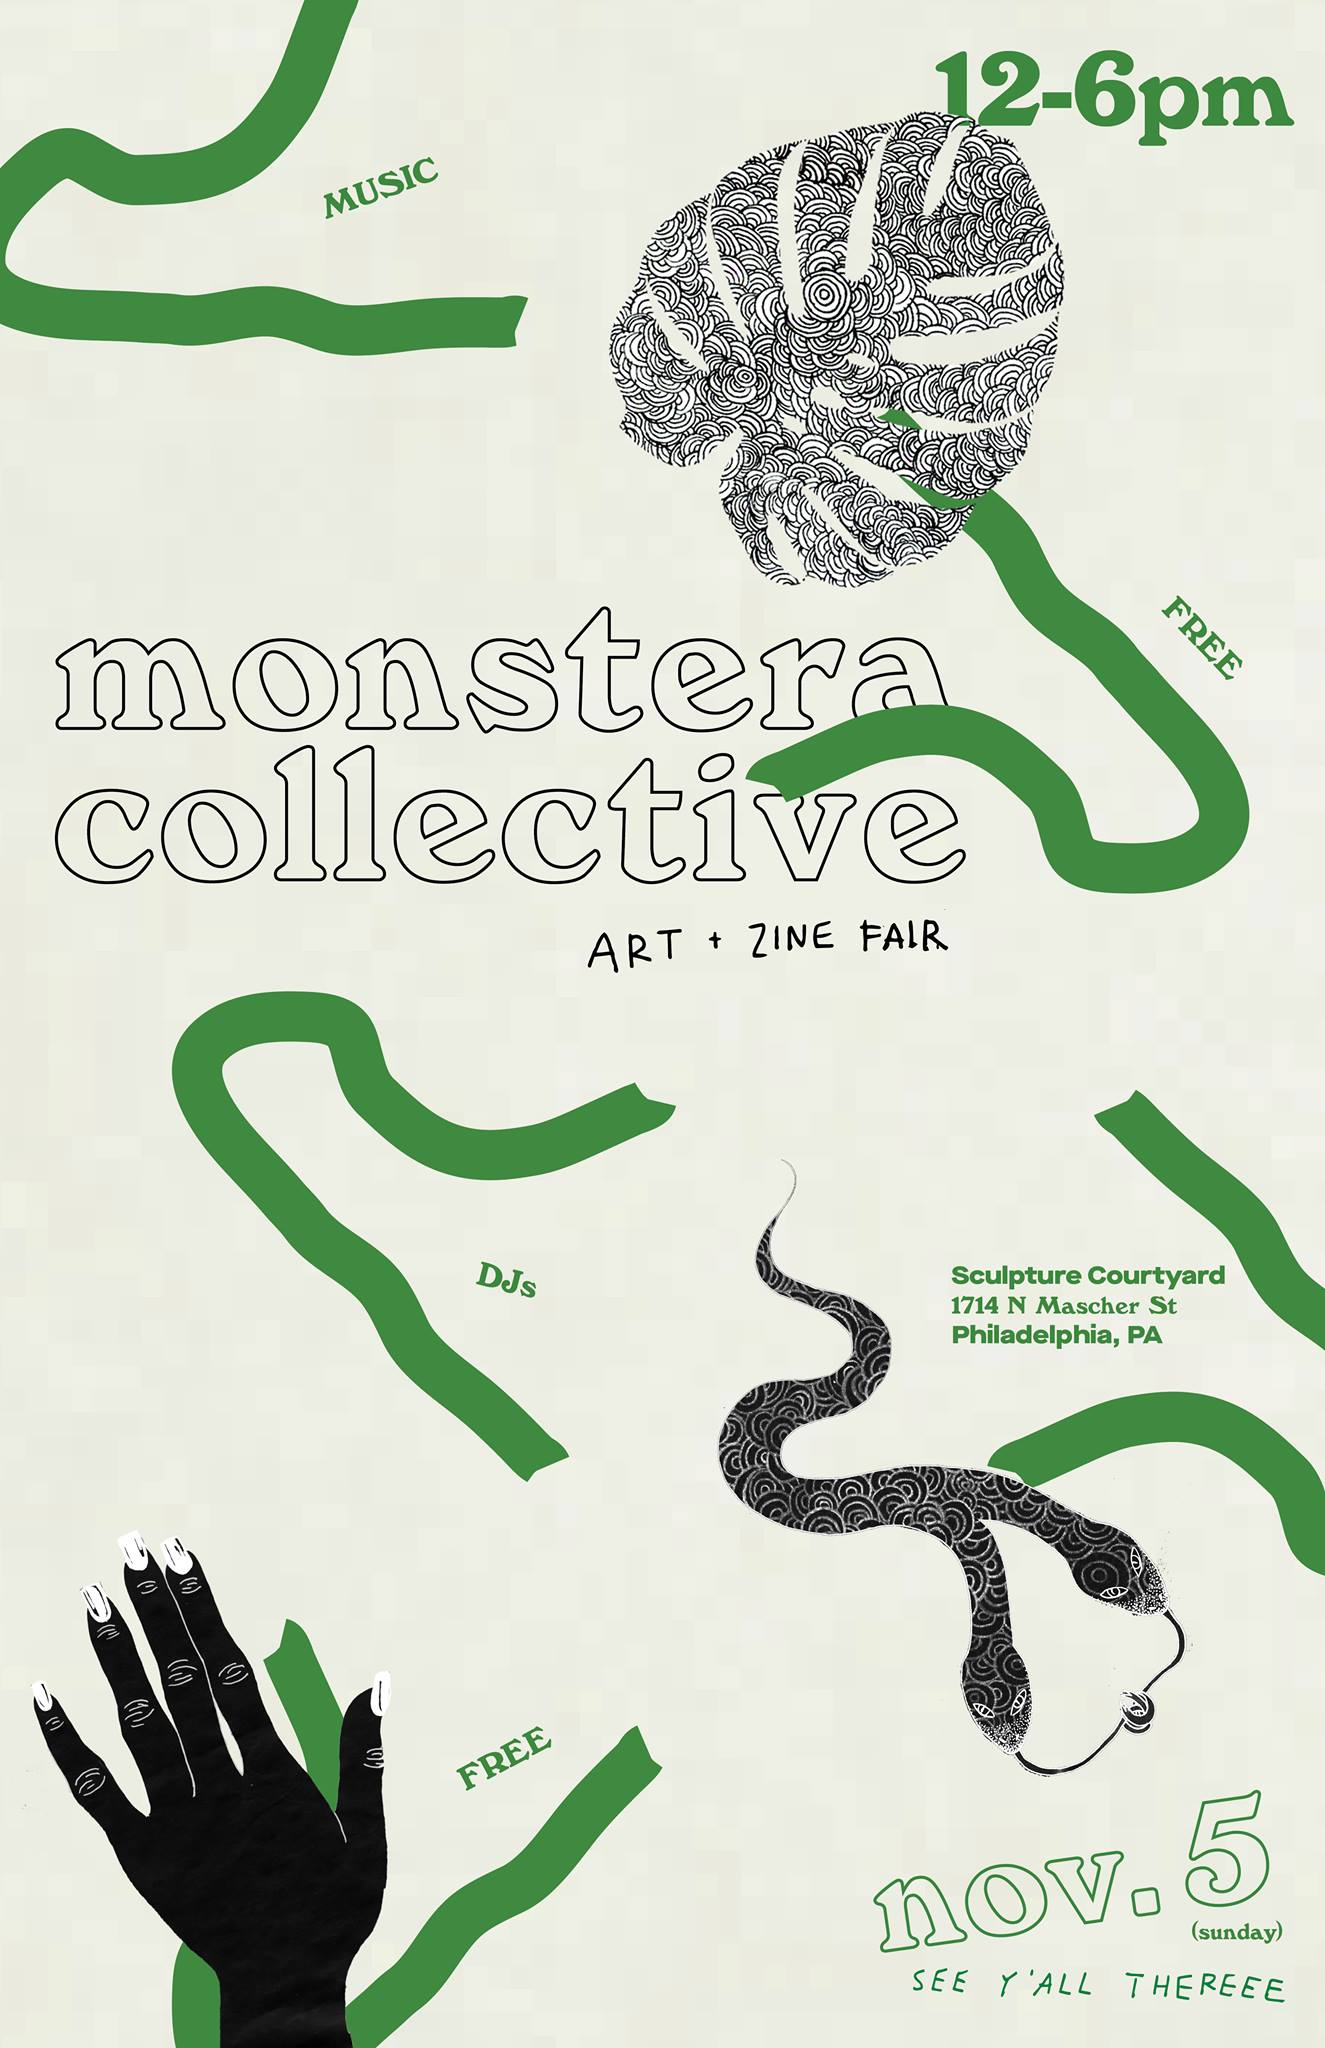 MonsteraCollectiveArtZineFair.jpg